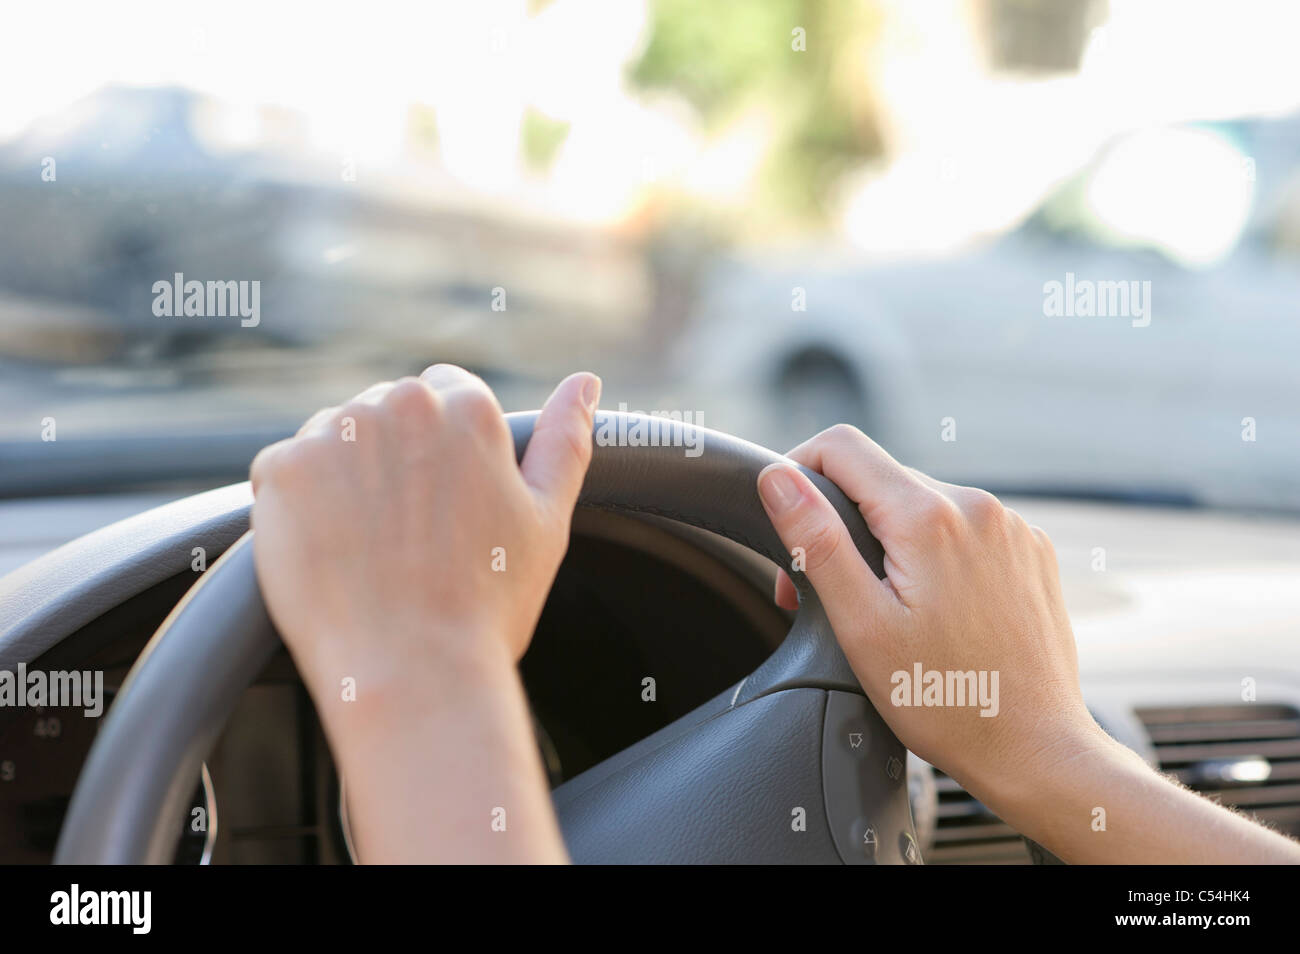 Close-up of human hand holding steering wheel - Stock Image